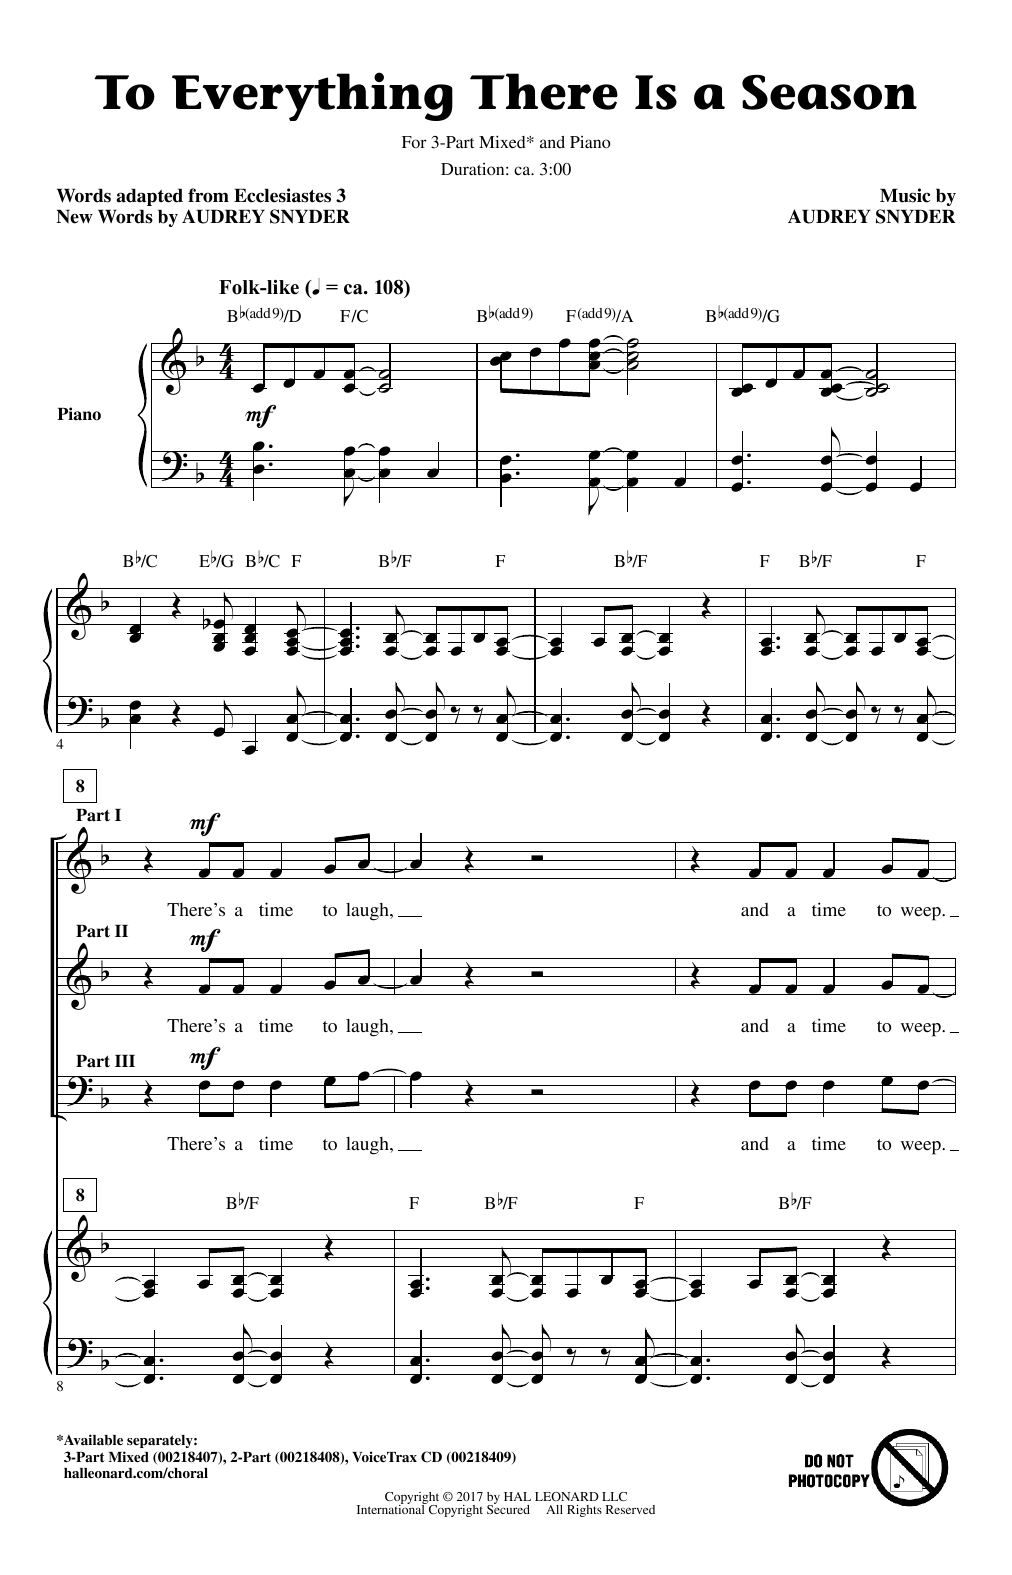 To Everything There Is A Season Sheet Music